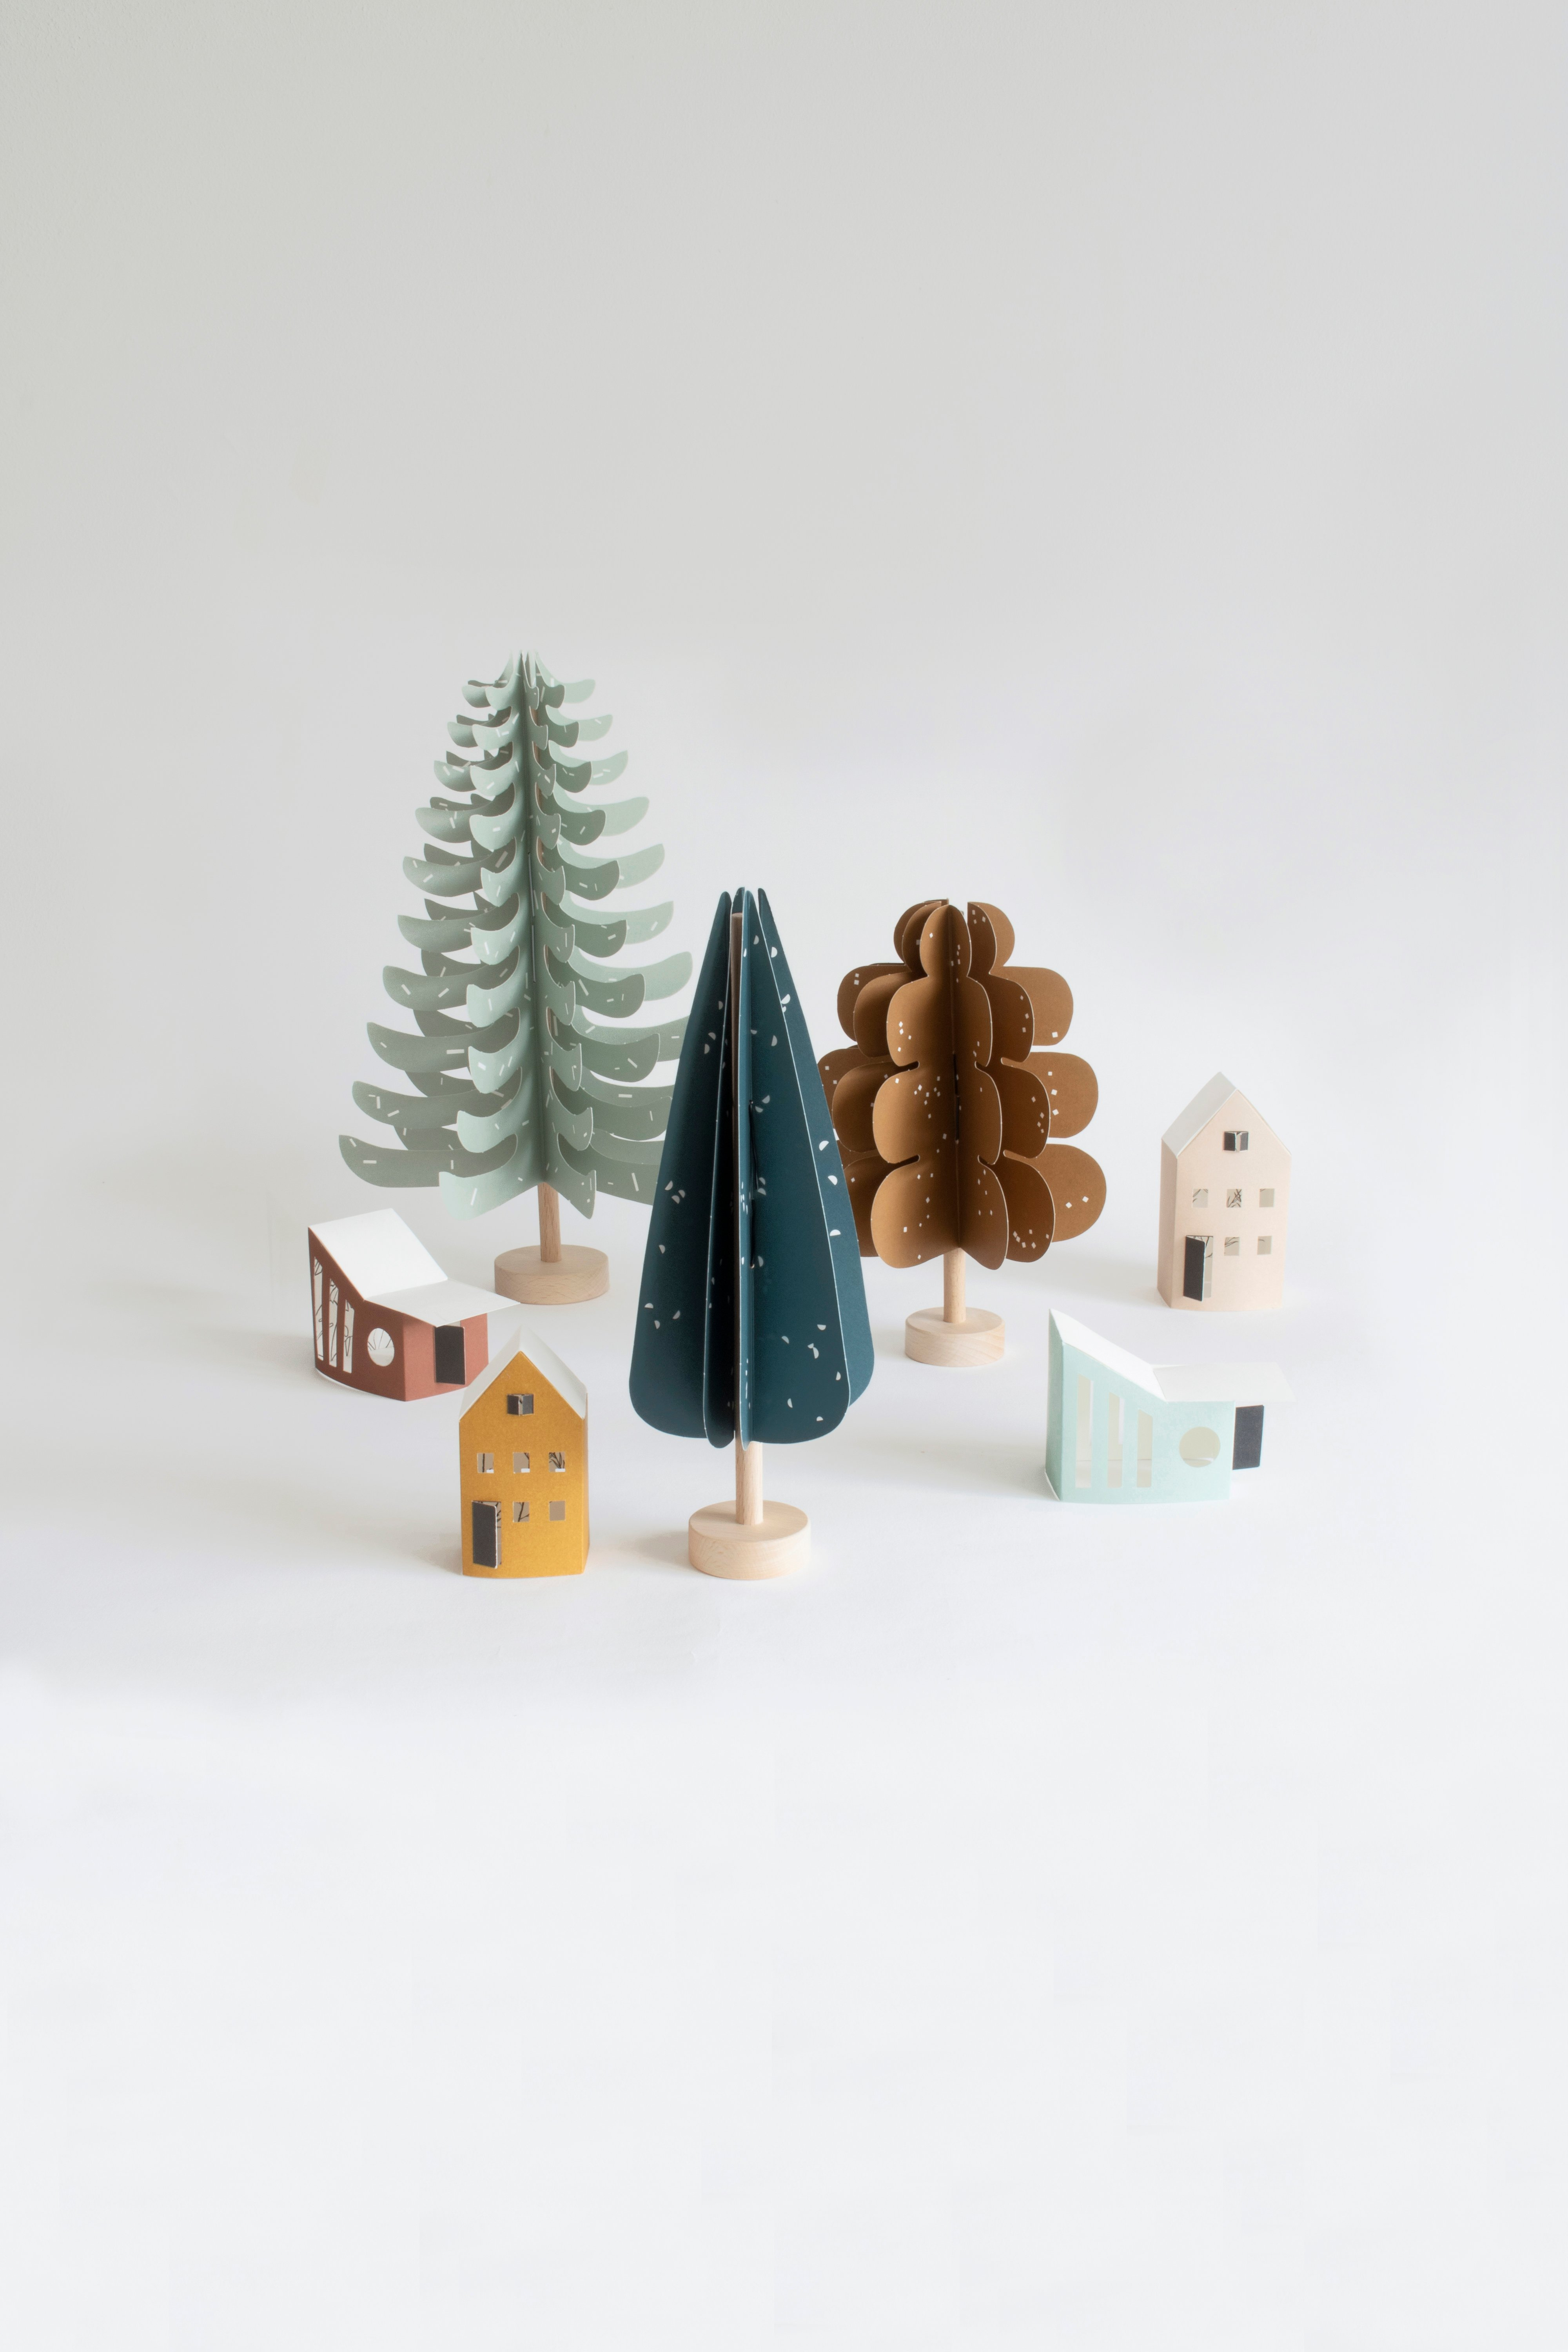 FIR_3 TREES + tiny houses